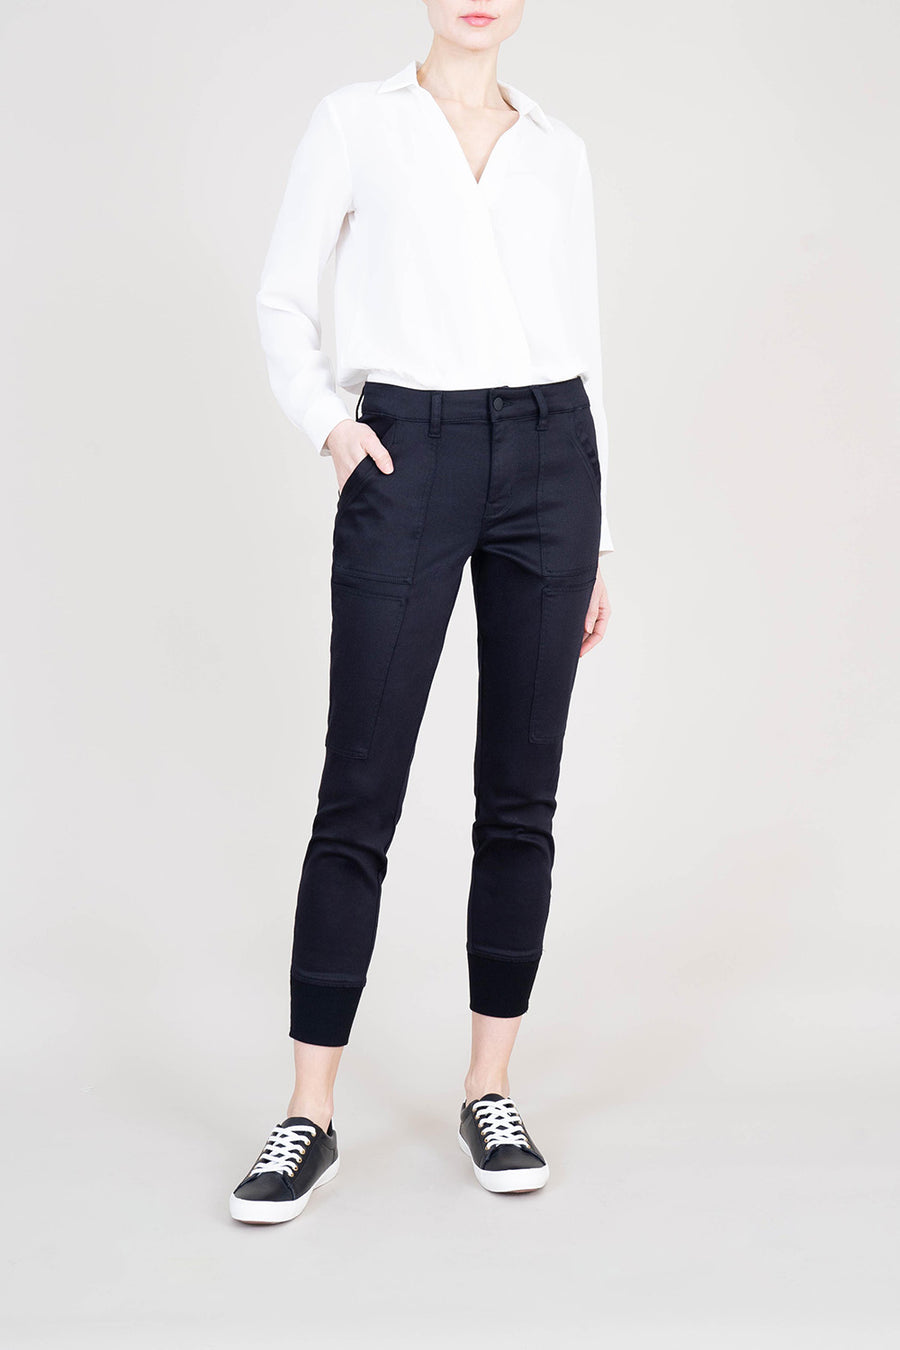 Angie Utility Jogger - level99jeans